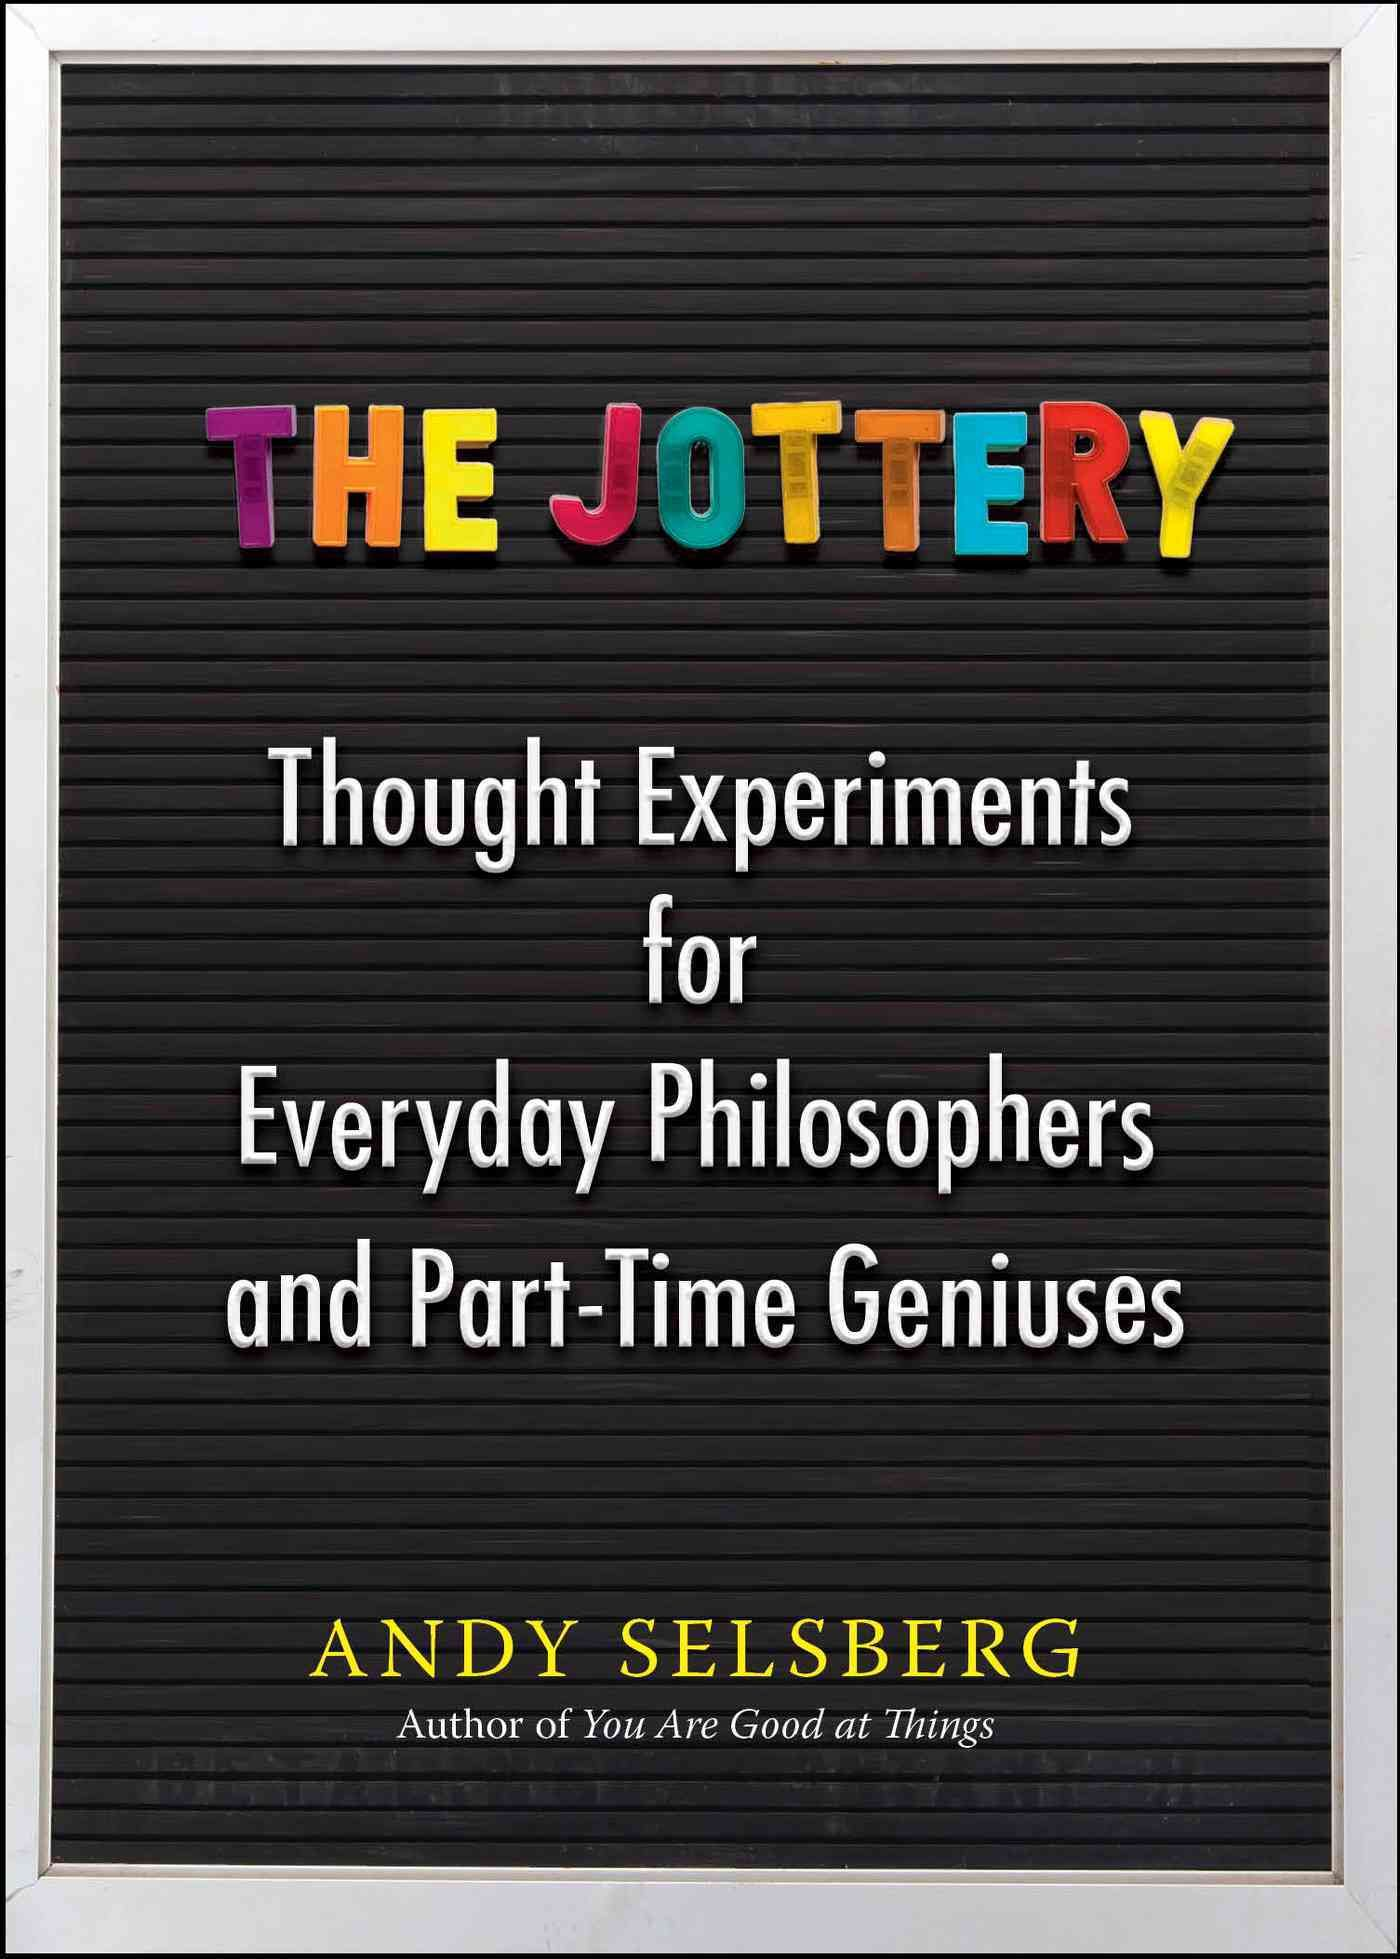 The Jottery Thought Experiments for Everyday Philosophers